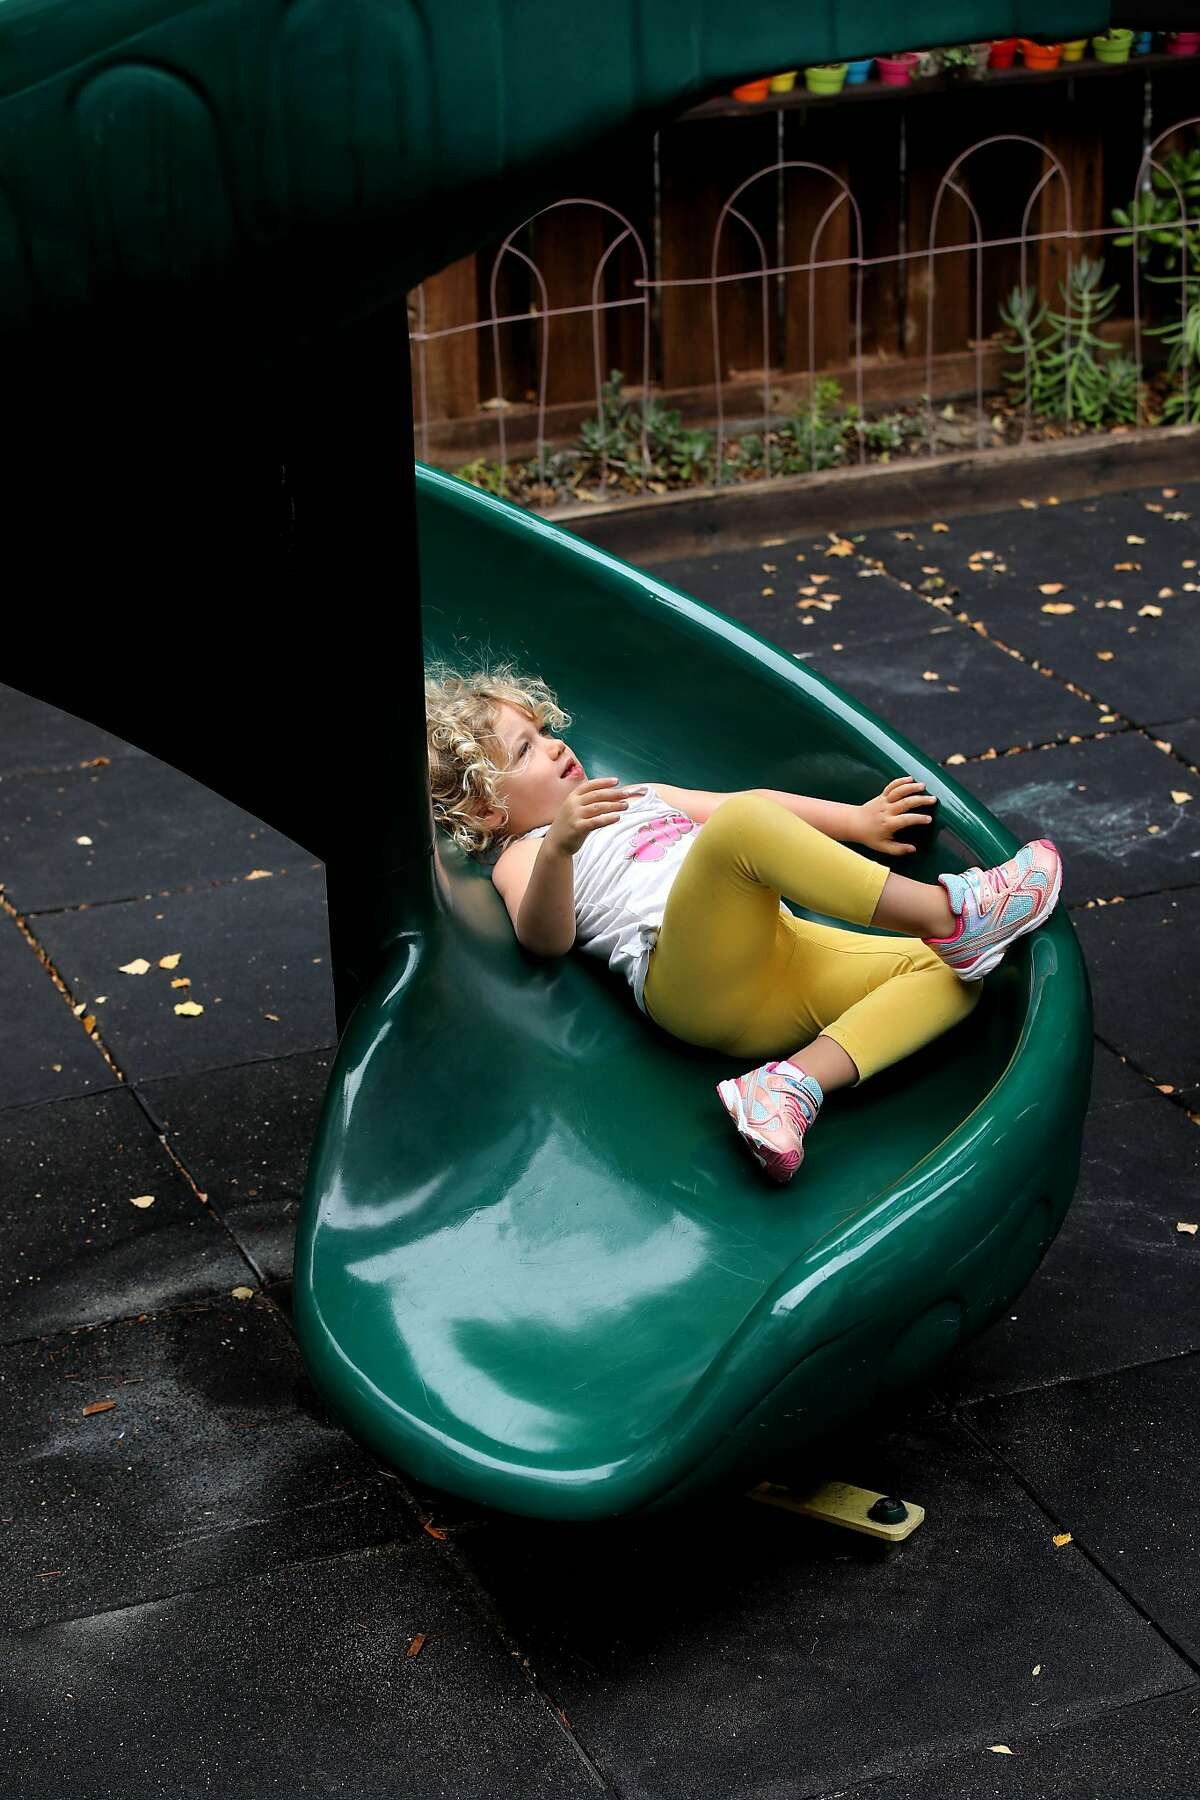 A preschooler comes down a slide at Rockridge Little School on Tuesday, July 21, 2020, in Oakland, Calif. As the pandemic surges and cities and counties stumble through the stop-start process of reopening, the childcare industry -- a vital crutch for many working parents -- appears to be on the verge of collapse. A new report from UC Berkeley serves as a grim I-told-you-so moment for centers and other providers who warned in the spring that long closures, confusing guidelines and heavy restrictions would devastate their already precarious financial models. Parents need childcare to return to work, and many may seek these programs now to fill in for closed public schools. But providers are closing or barely hanging on. Of 953 childcares surveyed for the report, 21% said they had missed a rent or mortgage payment during the pandemic, 81% are operating with fewer children, and 80% have higher cleaning costs.